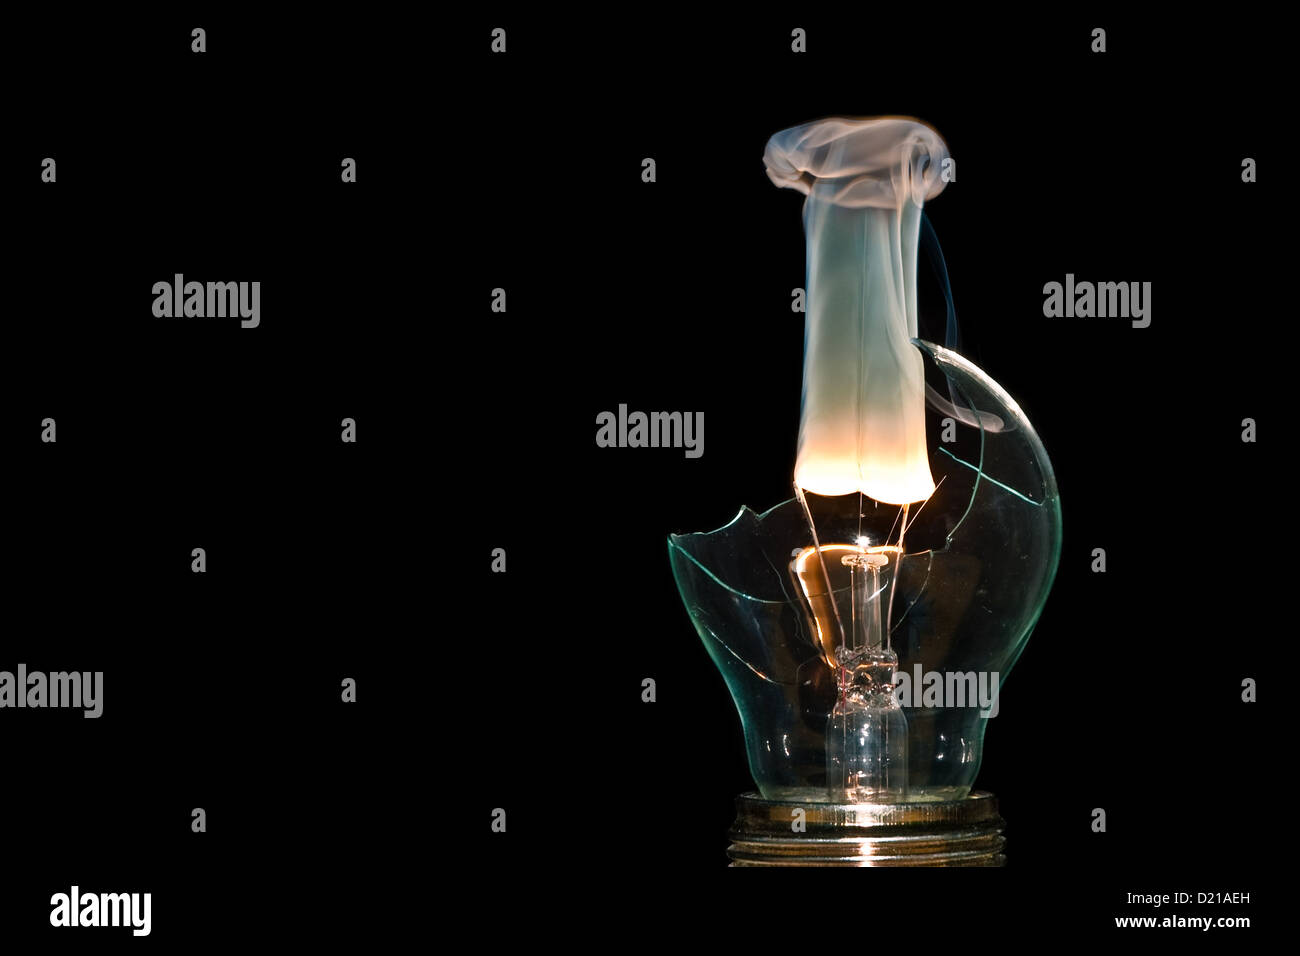 how to smoke out of a light bulb best of how to smoke out of a light bulb how to smoke meth 555